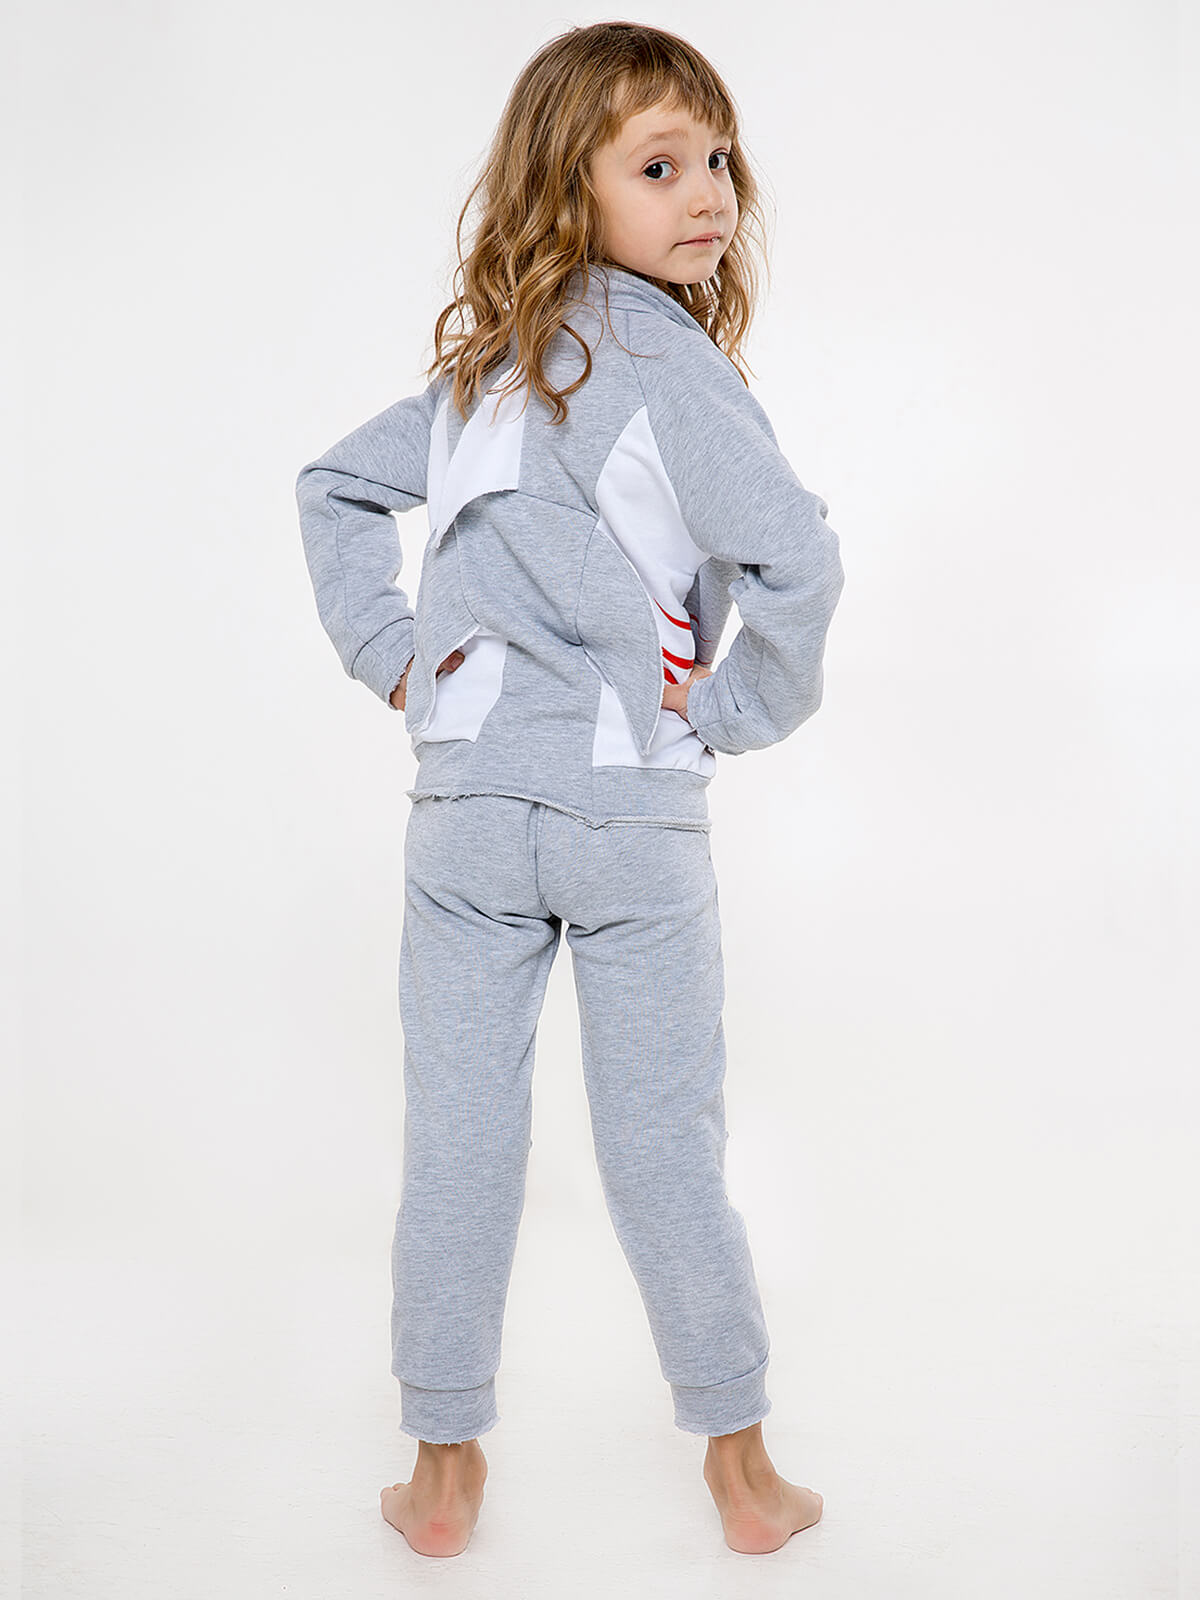 Kids Sport Suit Shark. Color gray. .